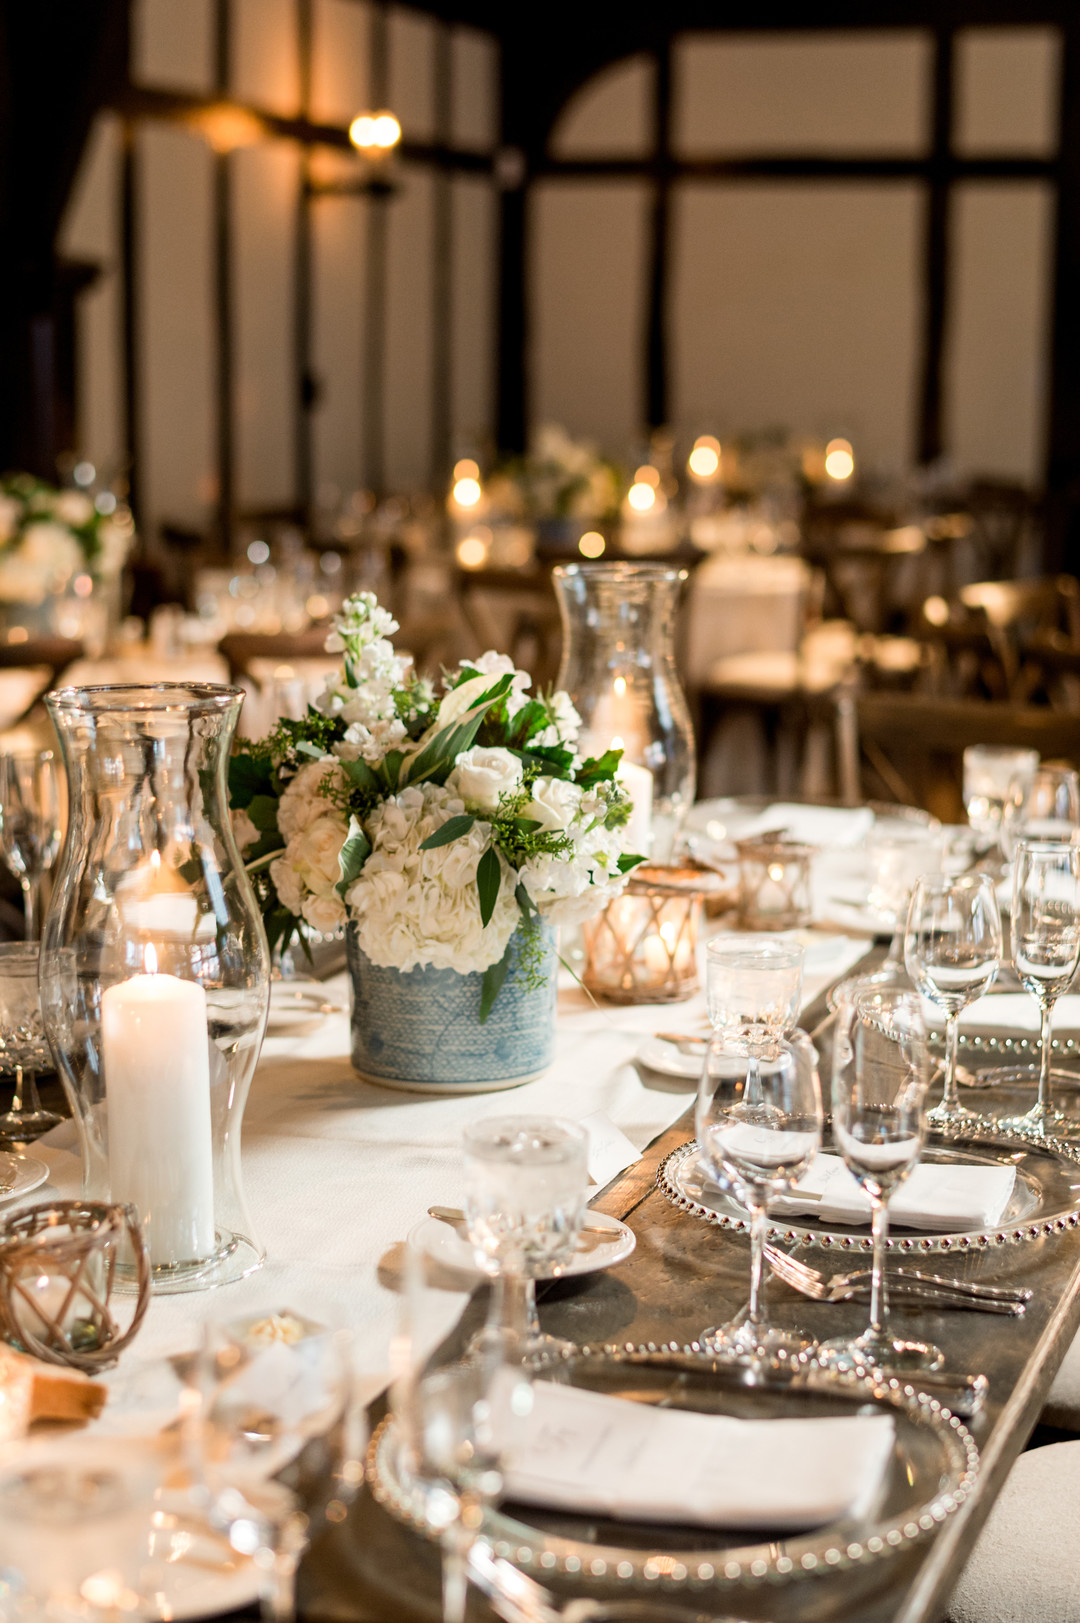 White Rose Table Center Pieces Chicago Wedding Julia Franzosa Photography